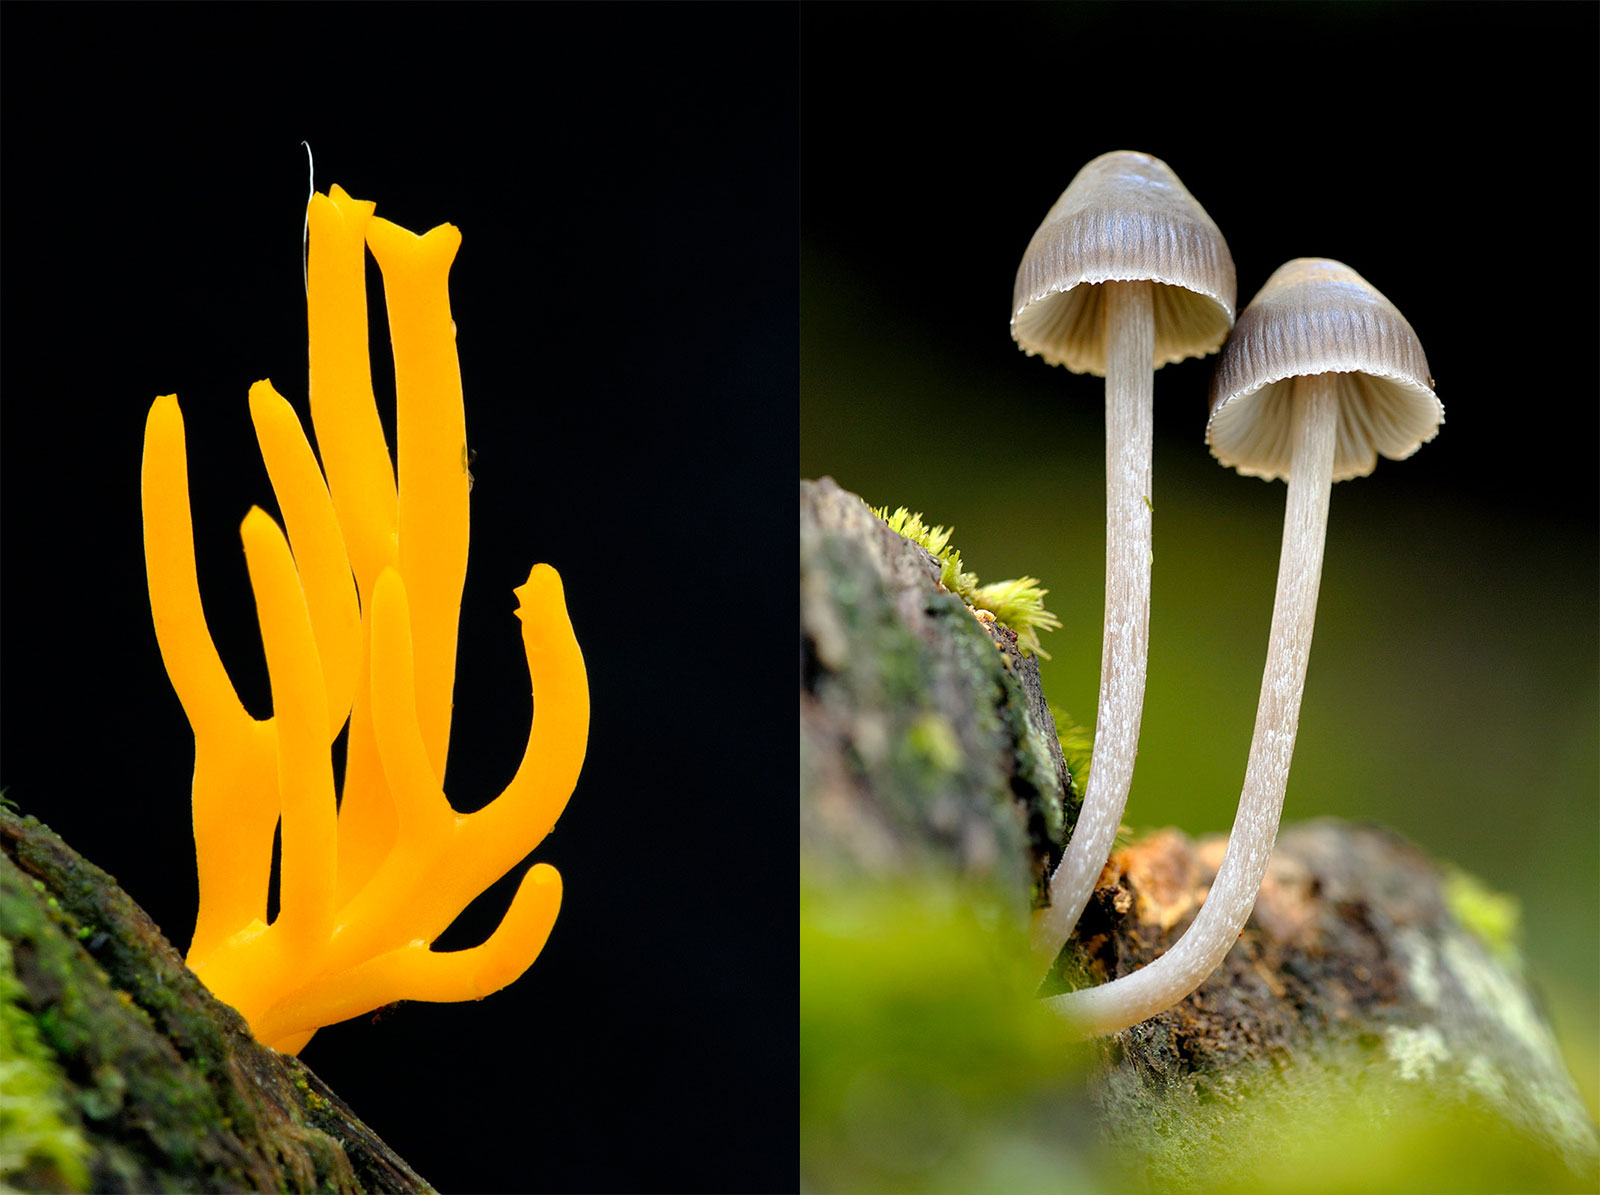 how to photograph mushrooms